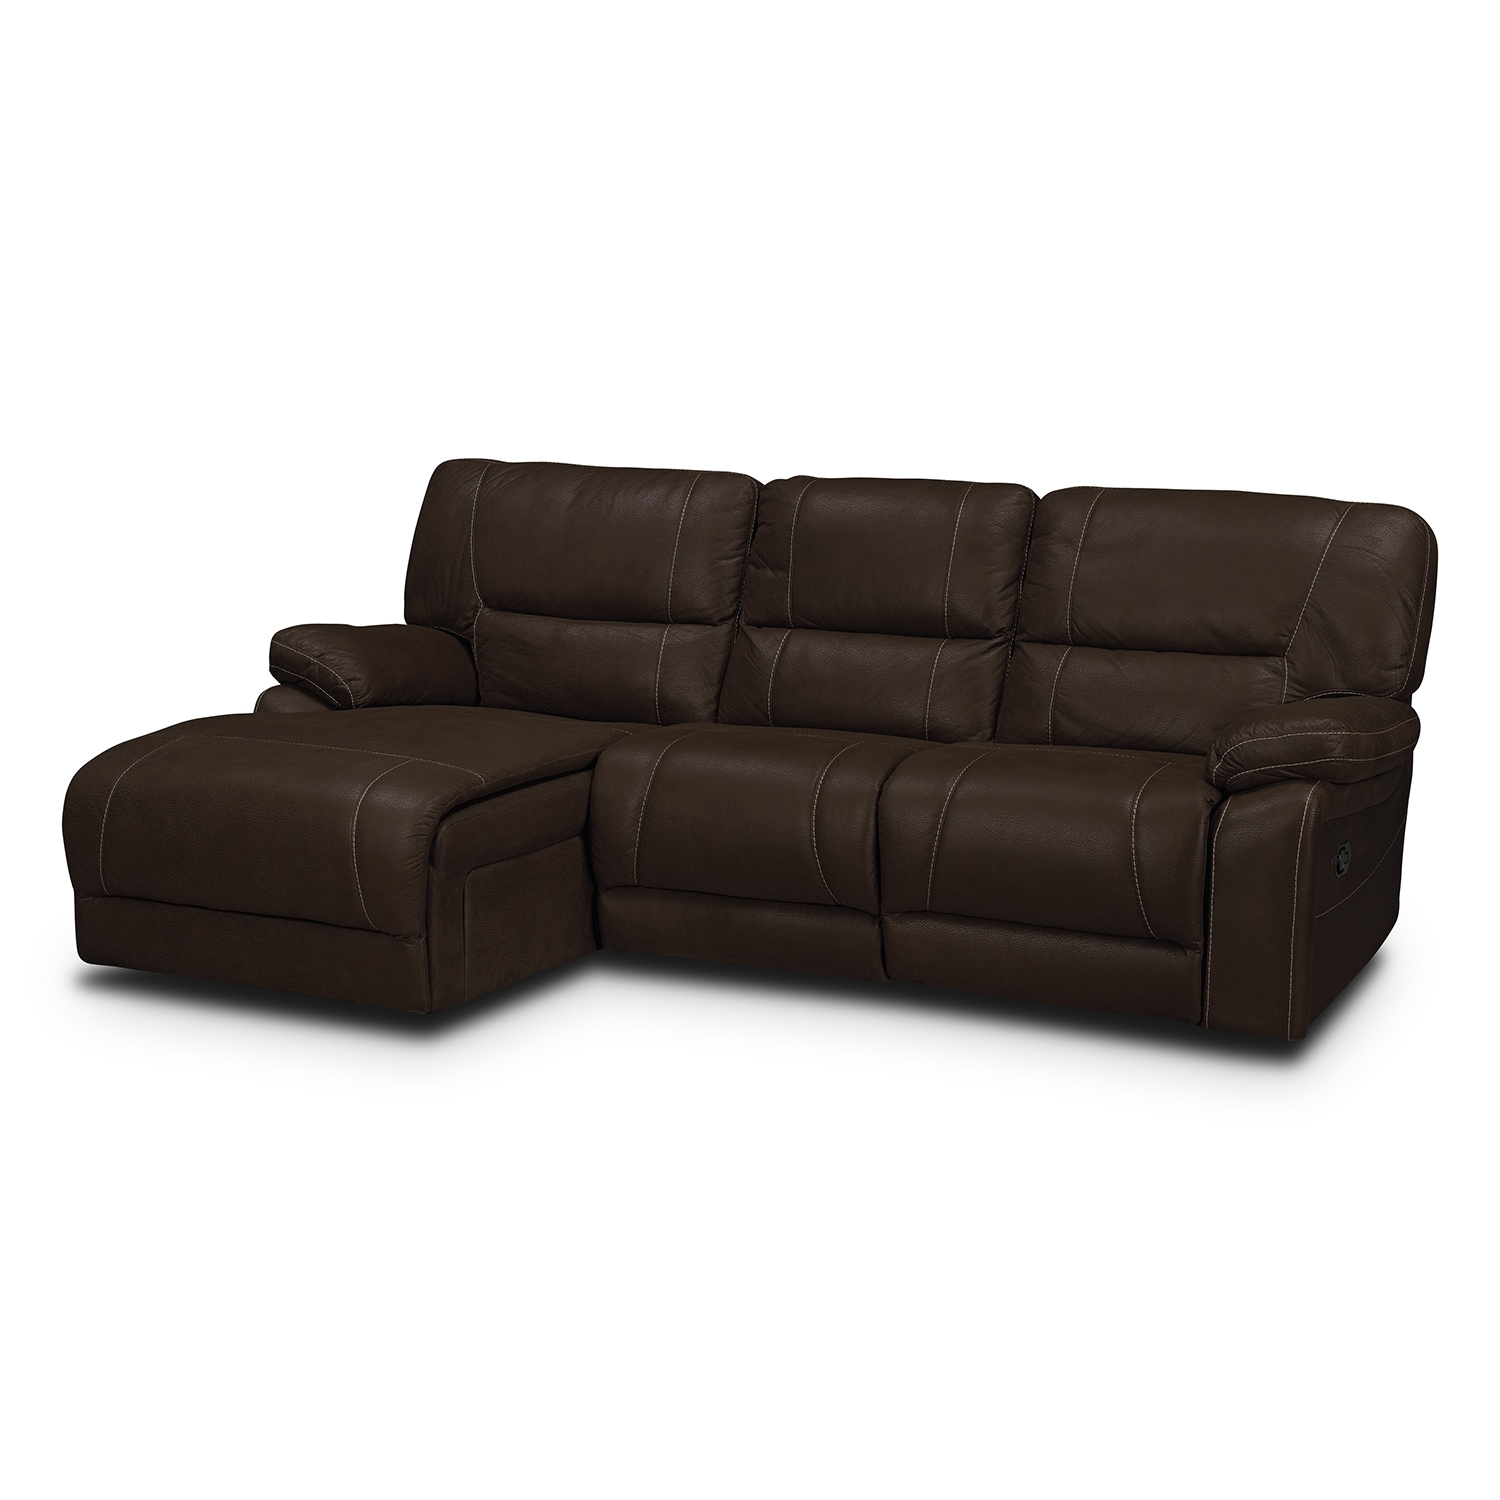 Living Room Furniture - Wyoming Saddle 2 Pc. Sectional (Reverse)